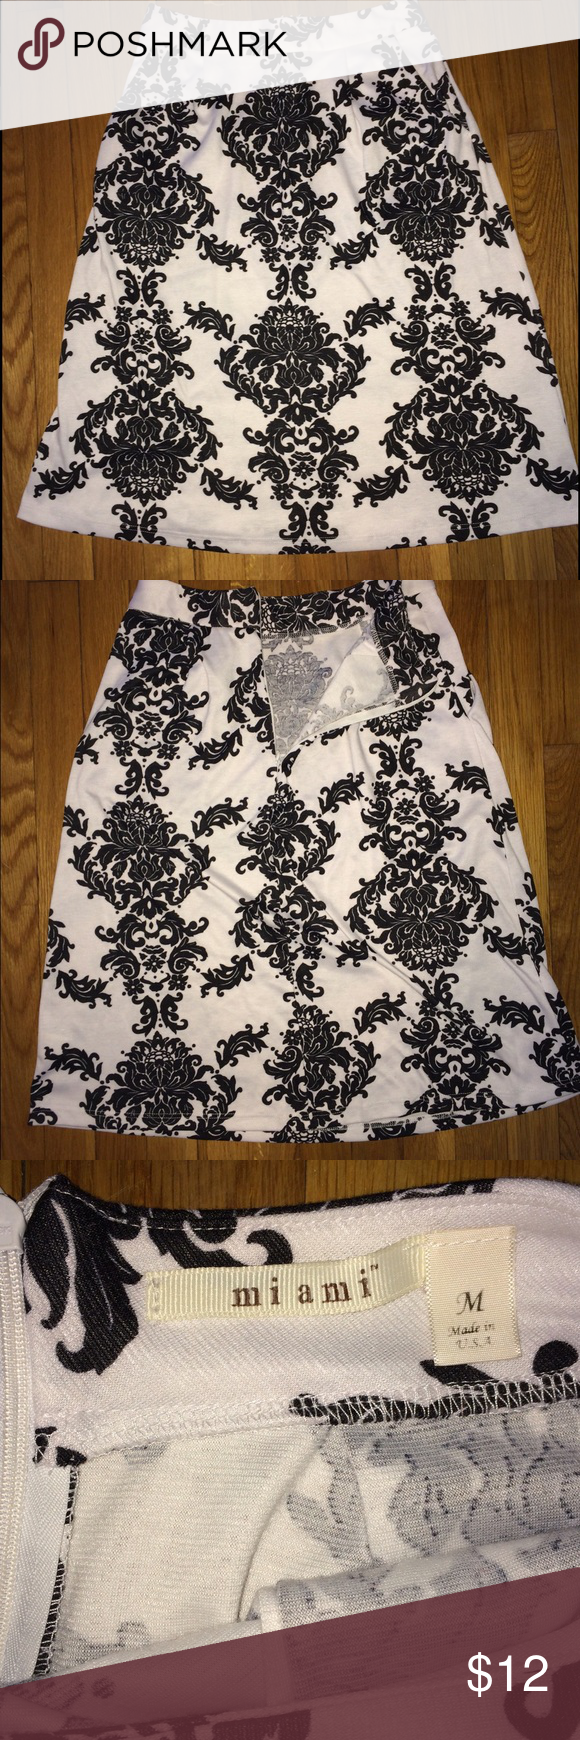 Beautiful black and White skirt! Beautiful condition, black and white pattern skirt. Great for a night out or a casual work day! Miami Skirts